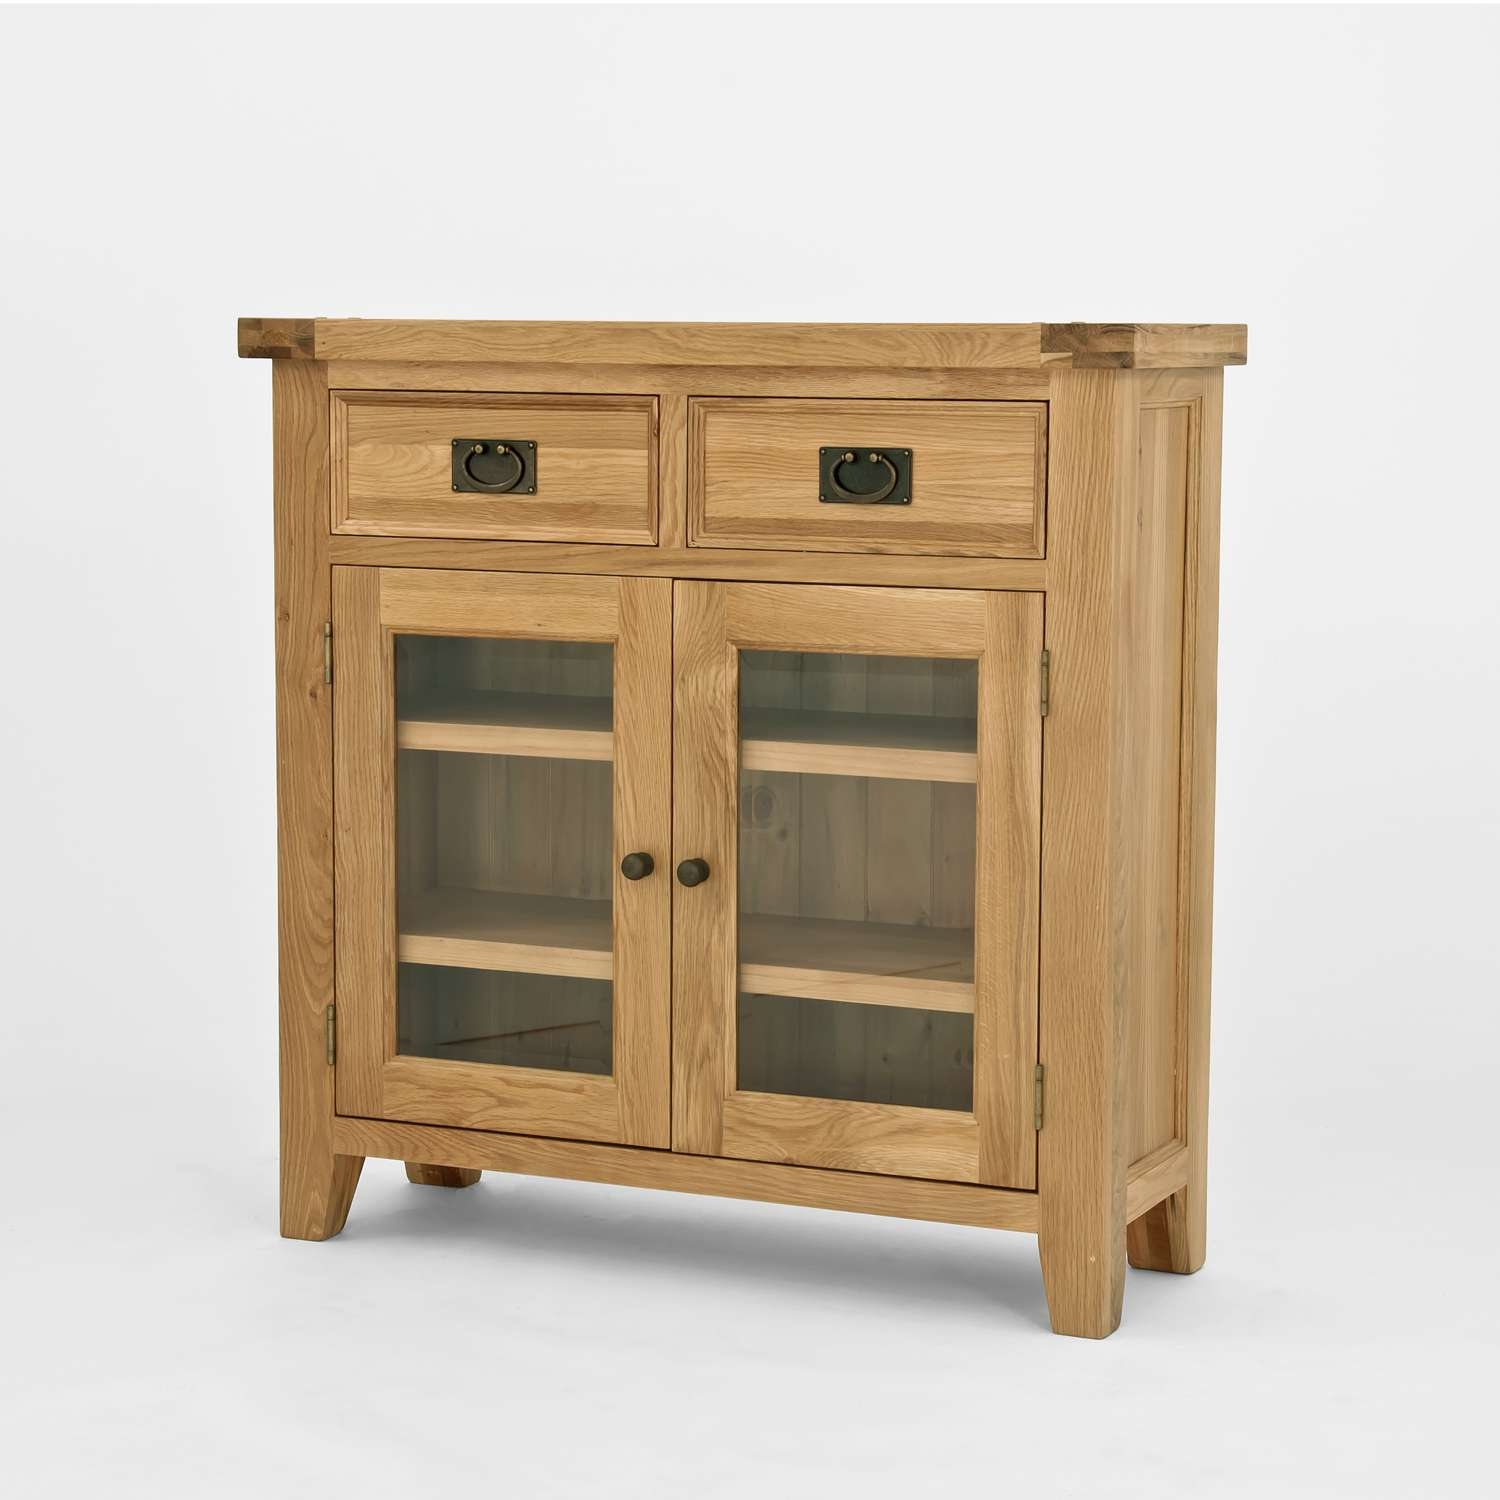 Chiltern Oak Small Sideboard/bookcase With Glass Doors Pertaining To Sideboards With Glass Doors (View 4 of 20)